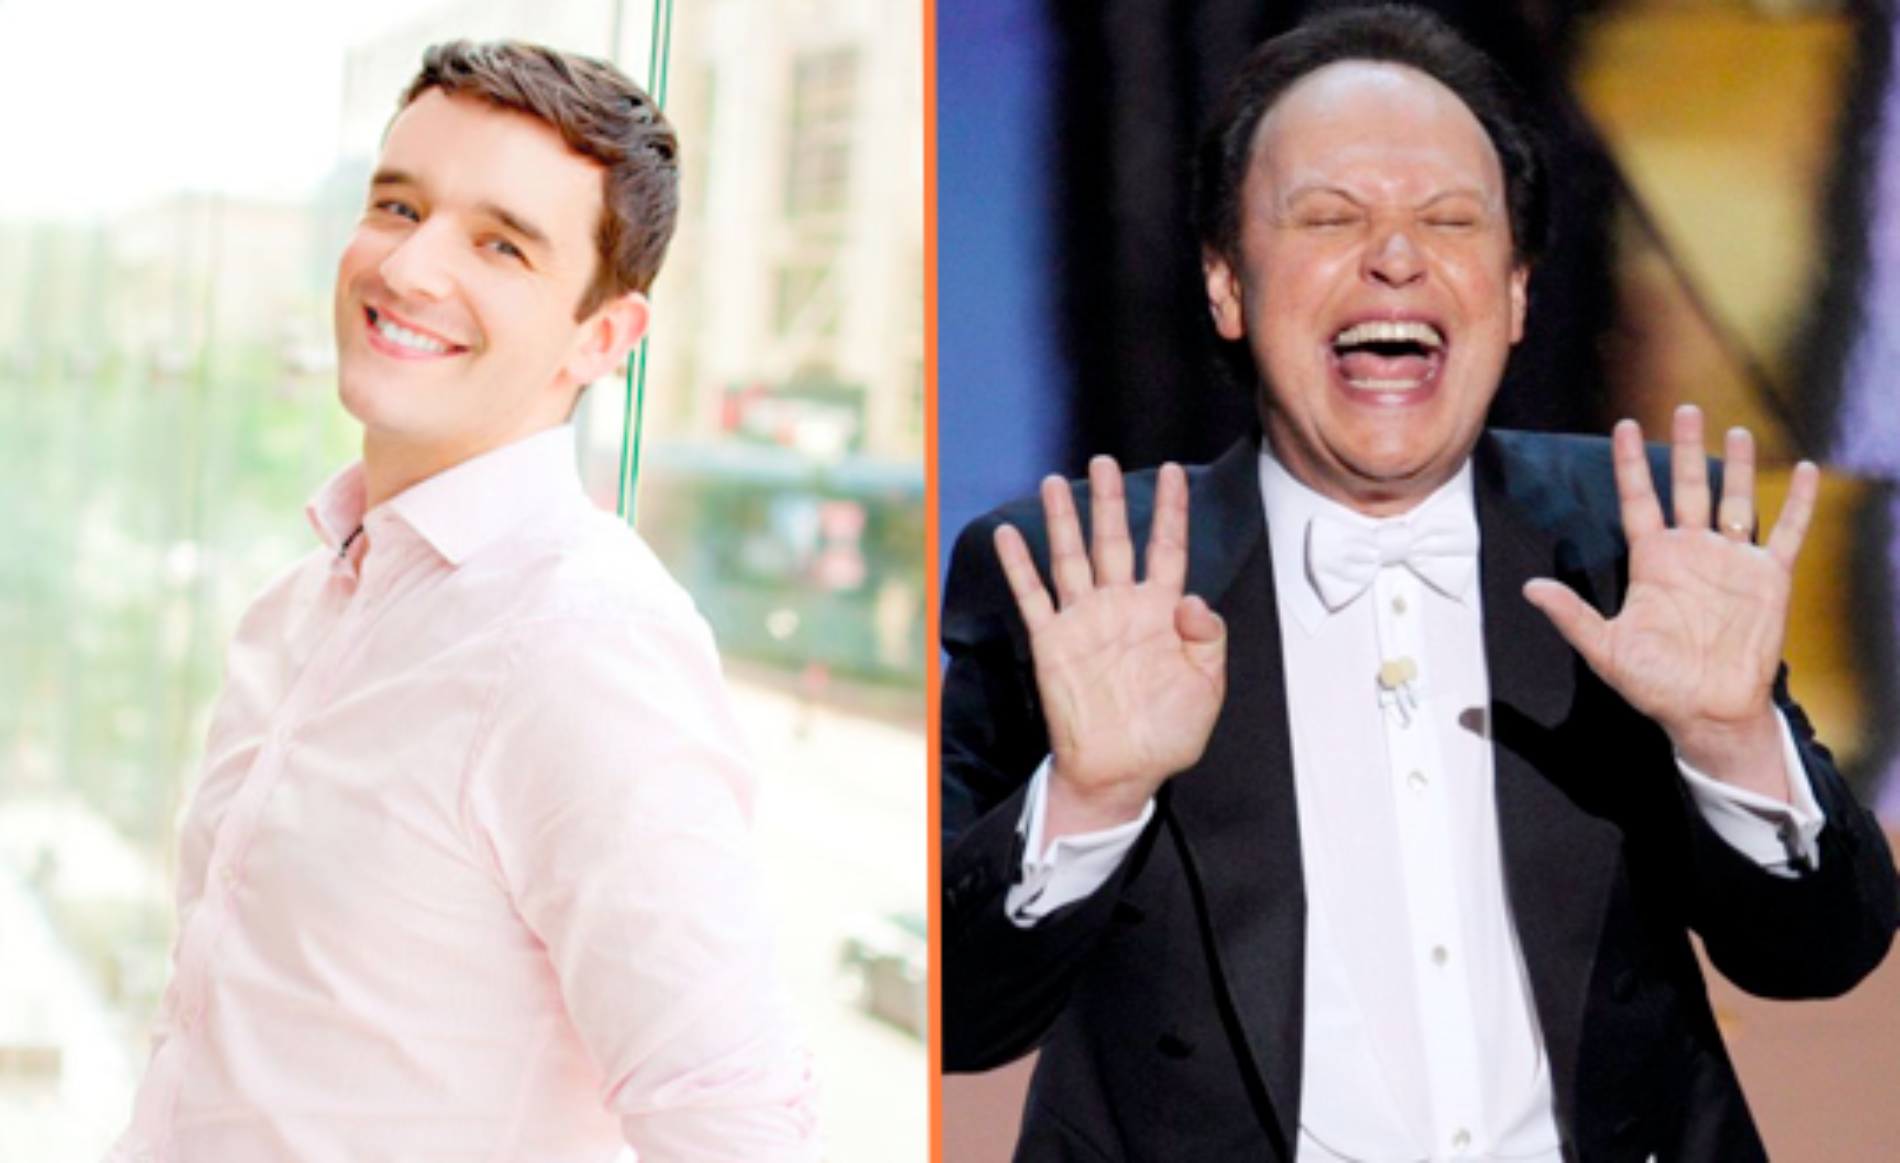 'If You Don't Like Watching Gay Sex On TV, Change The Channel.' Michael Urie To Billy Crystal